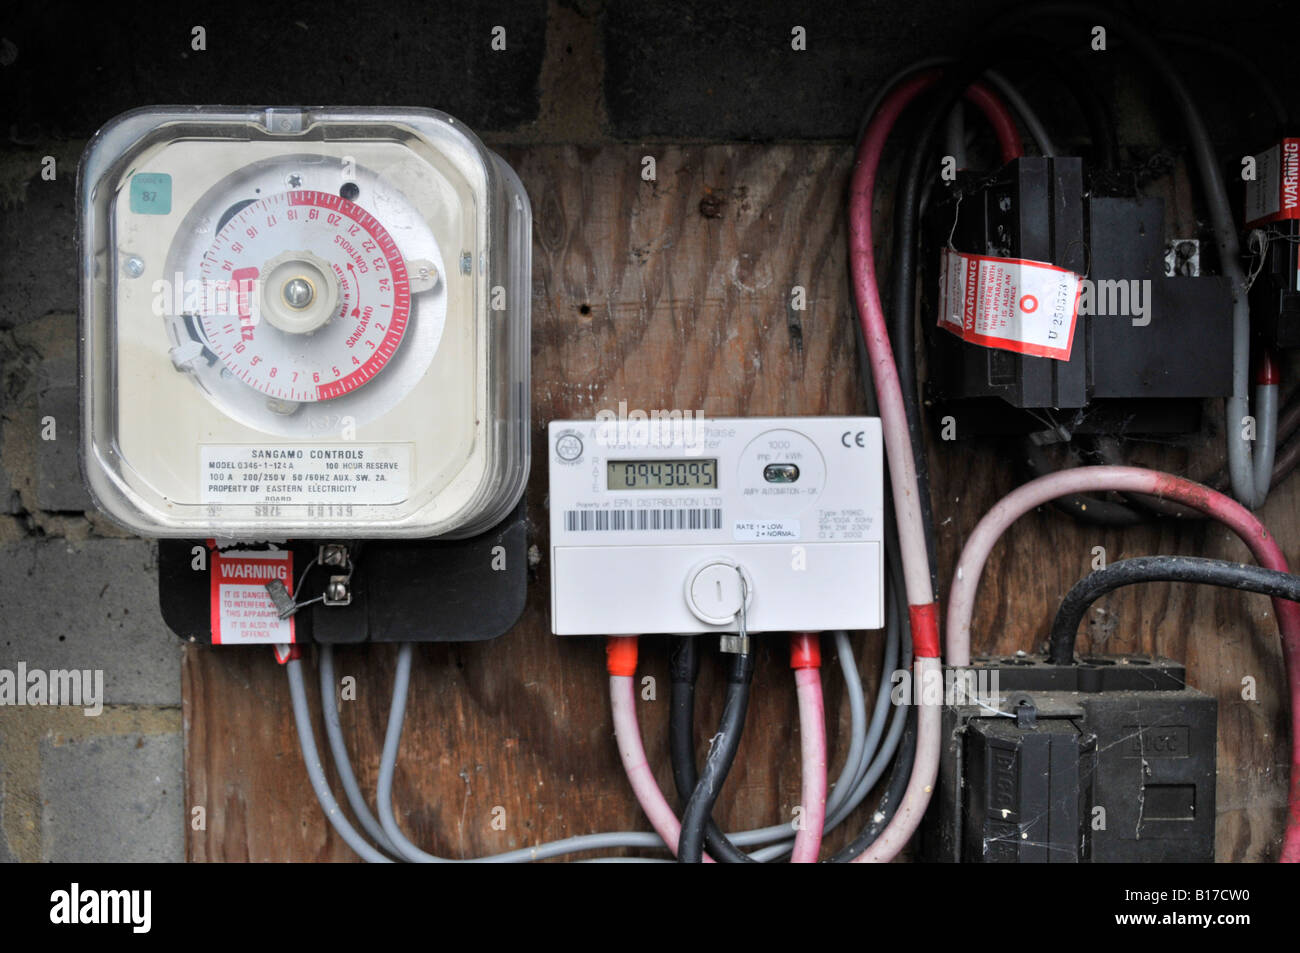 Domestic electricity meter with time clock that switches night time meter readings on and off all housed in external - Stock Image